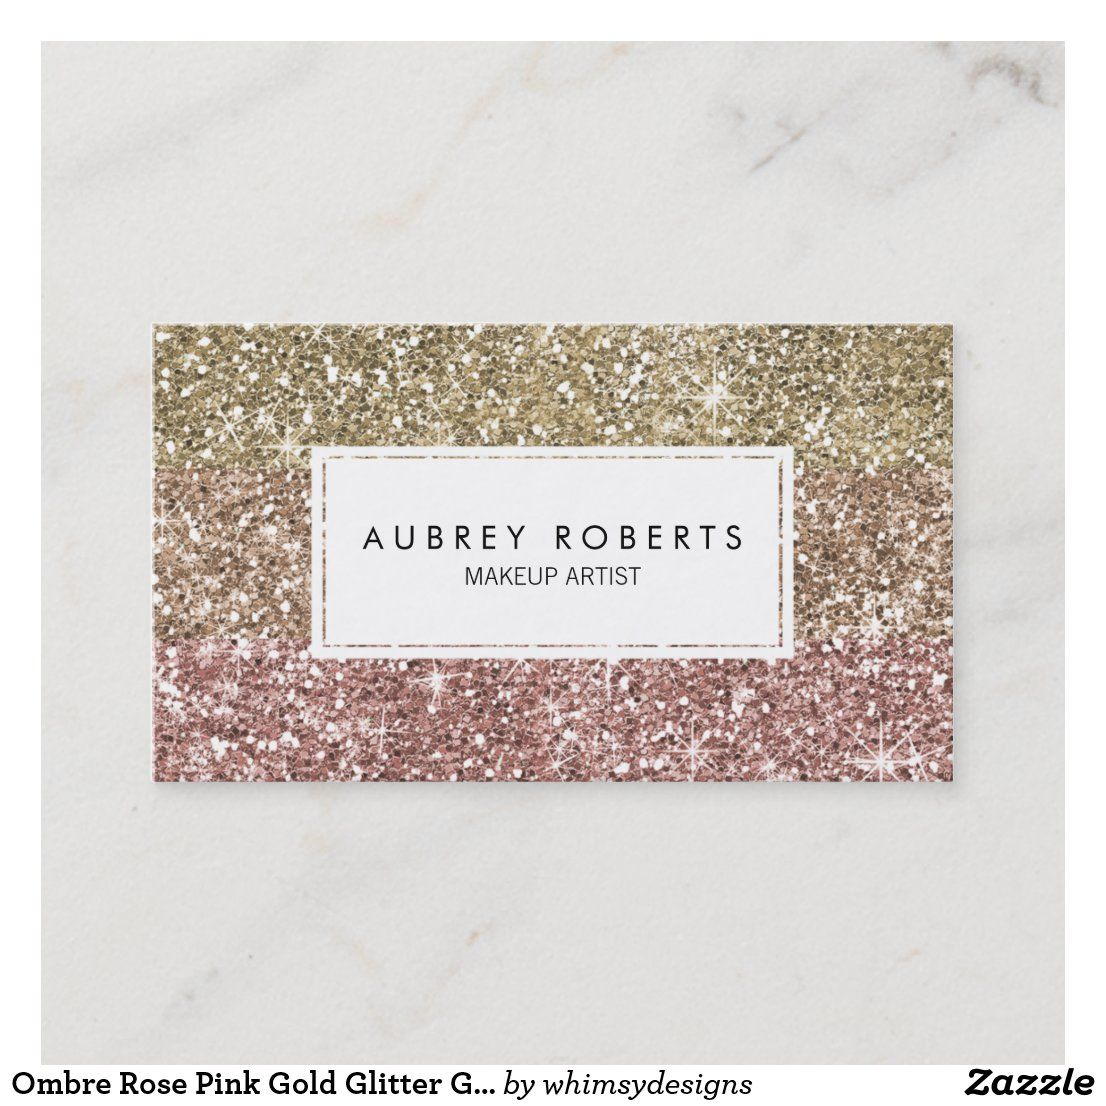 Ombre Rose Pink Gold Glitter Girly Business Cards Zazzle Com In 2021 Girly Business Cards Rose Gold Business Card Makeup Artist Business Cards Templates